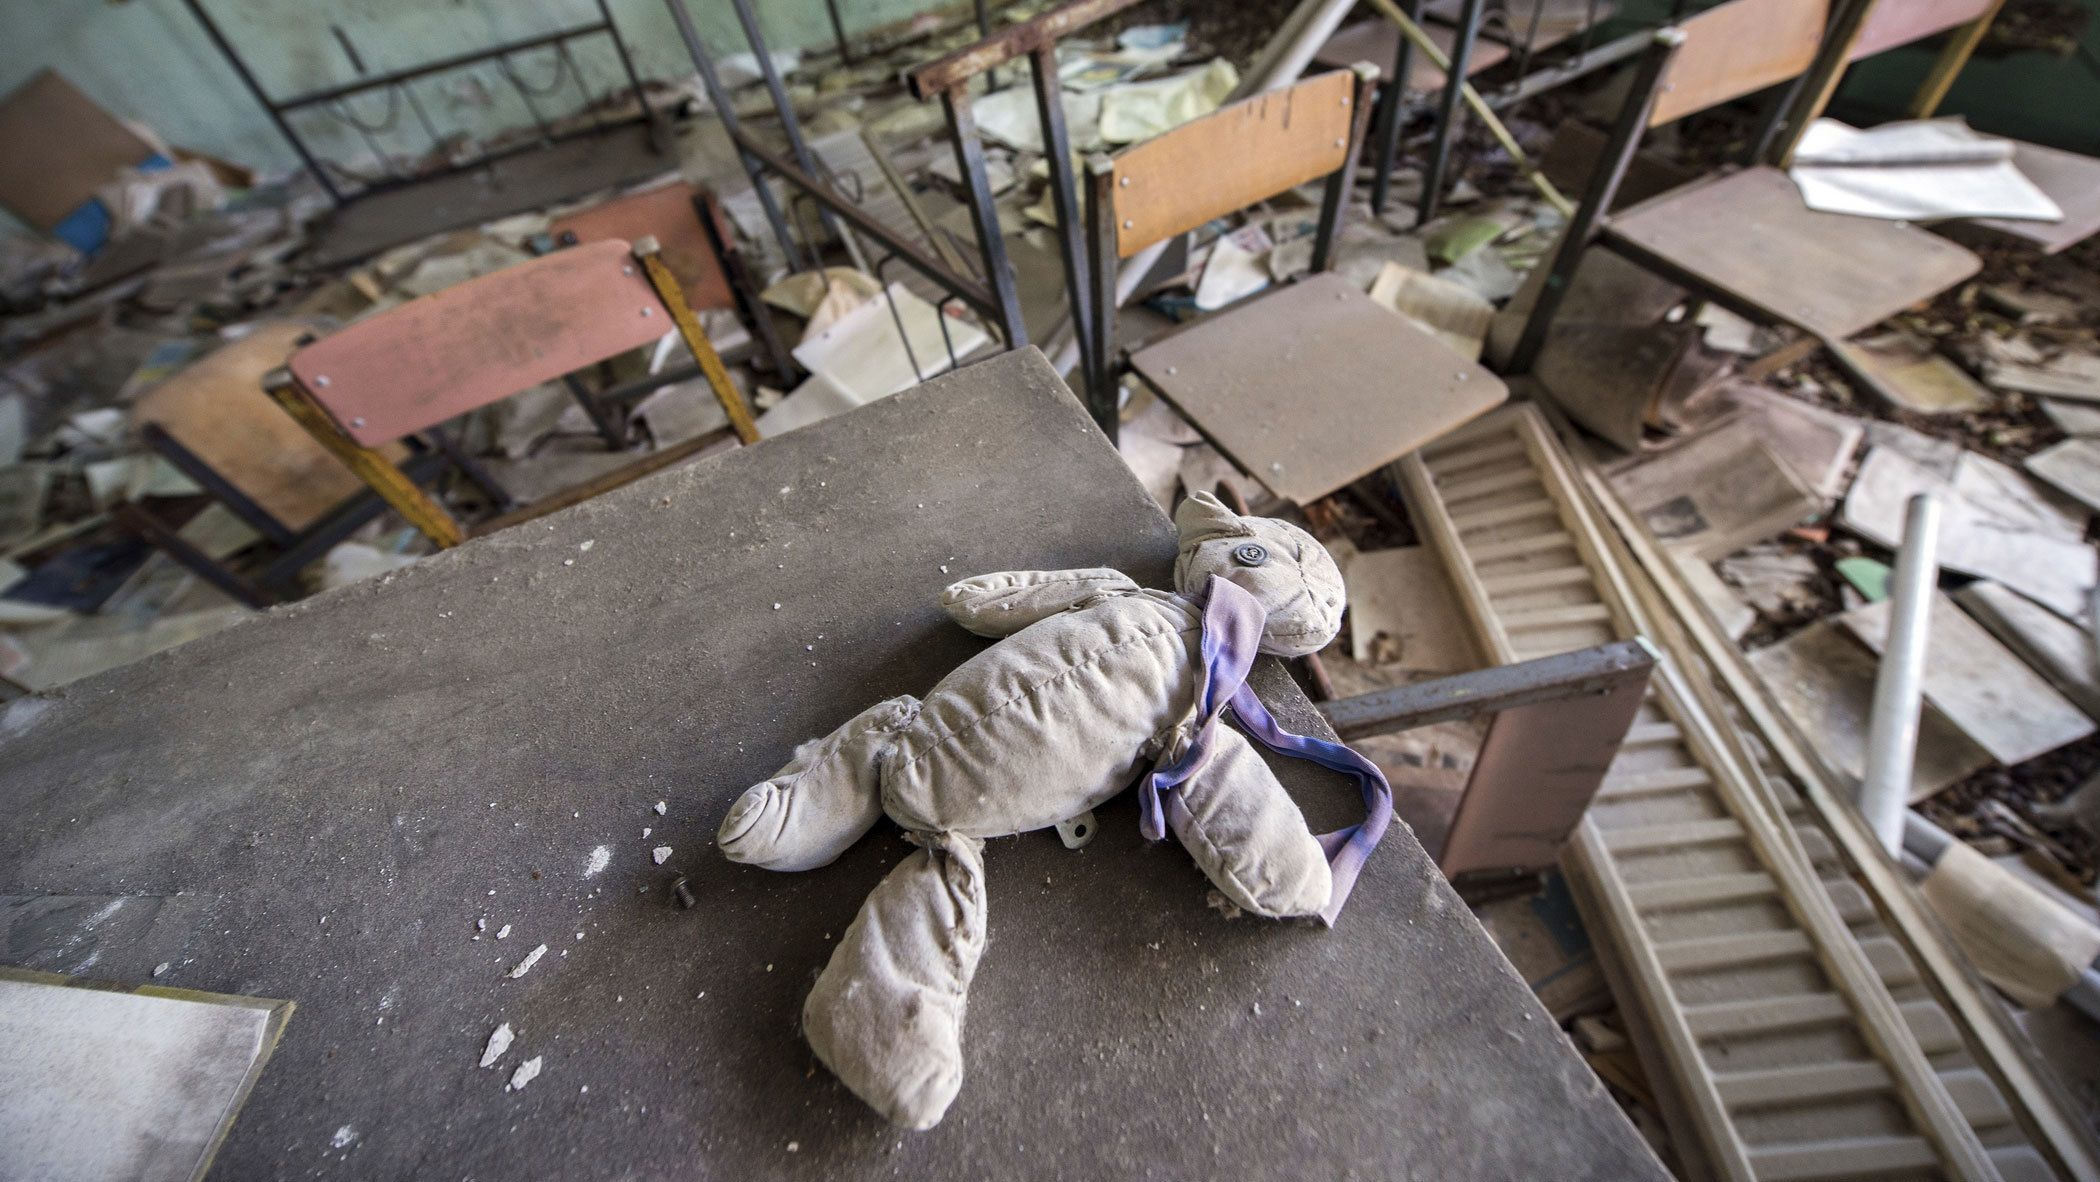 Child's doll in an abandoned building in Chernobyl